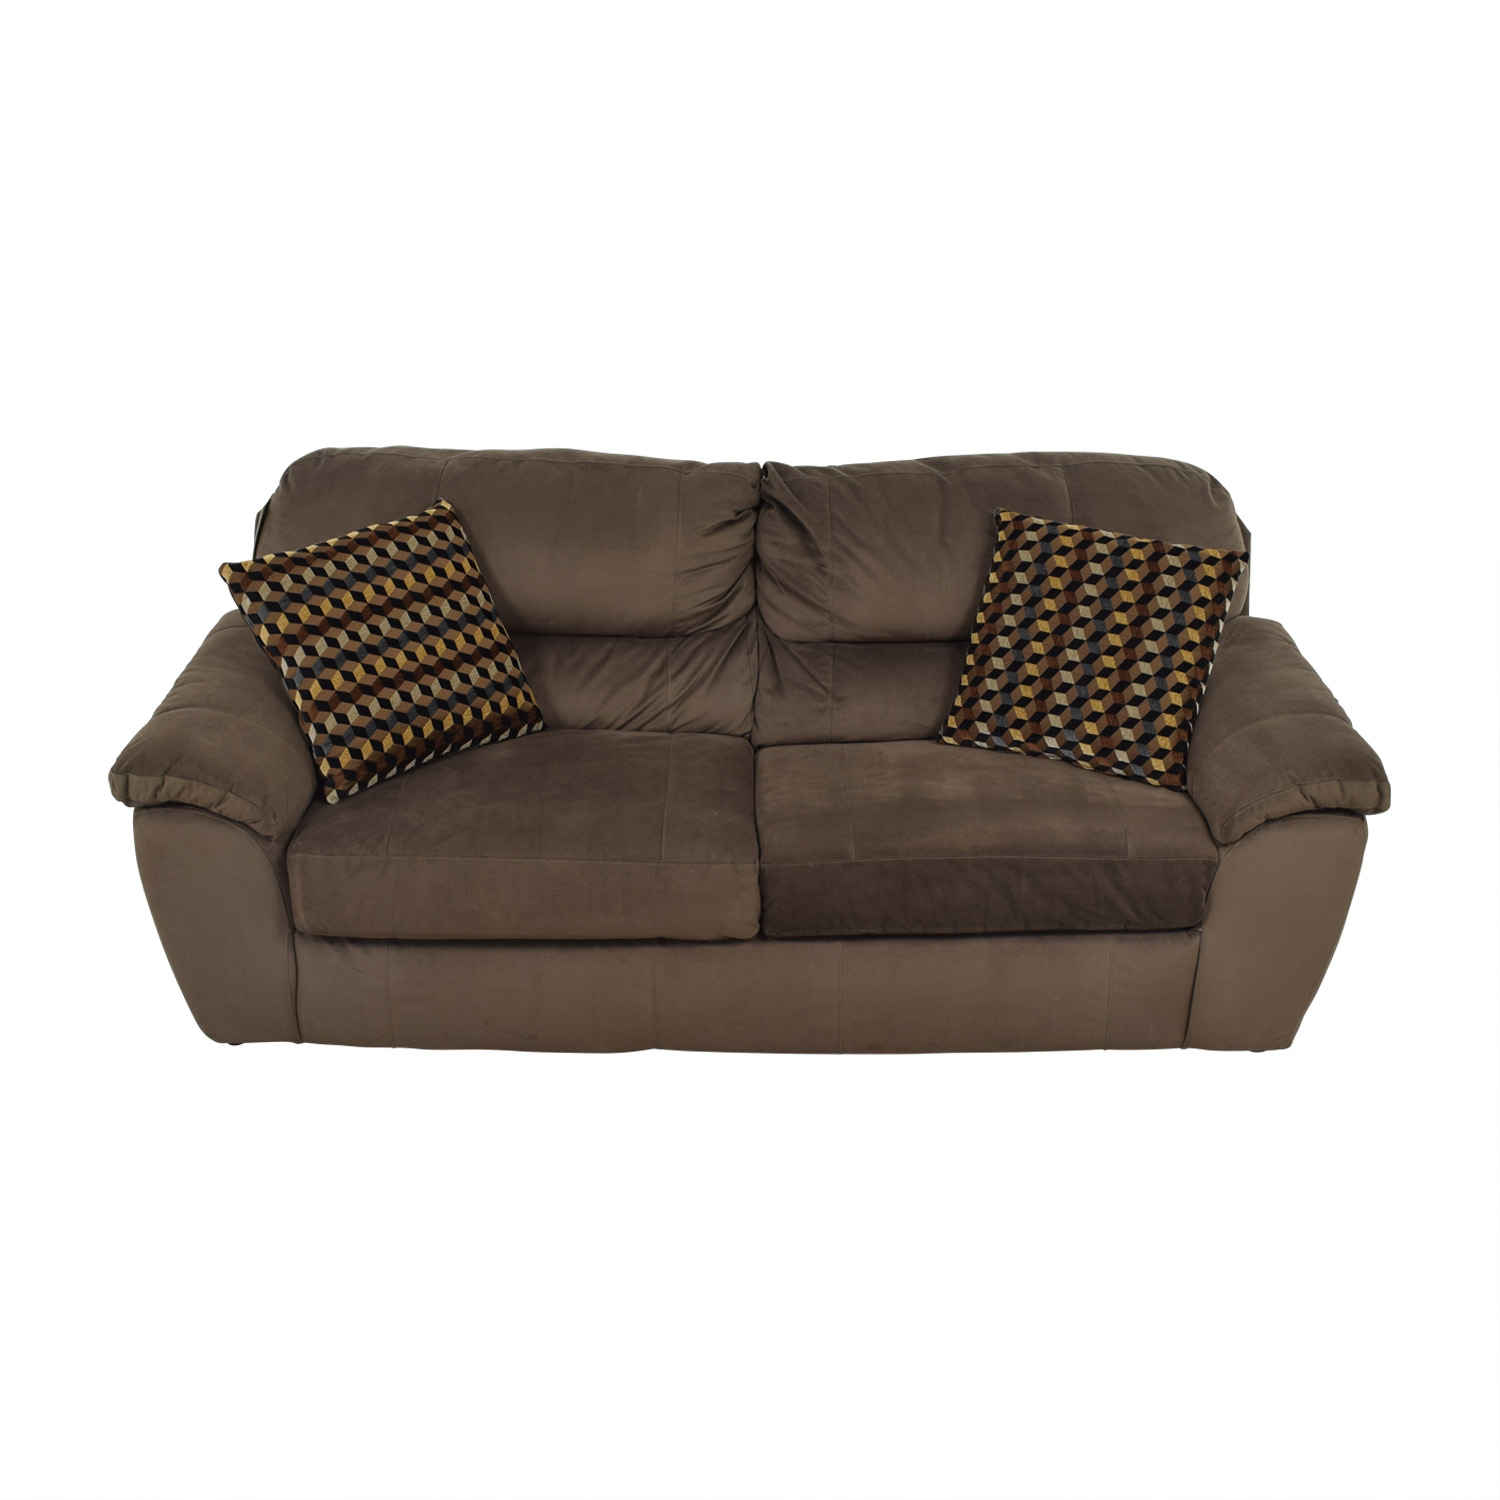 42% OFF Bob s Furniture Bob s Furniture Brown Bailey Two Cushion